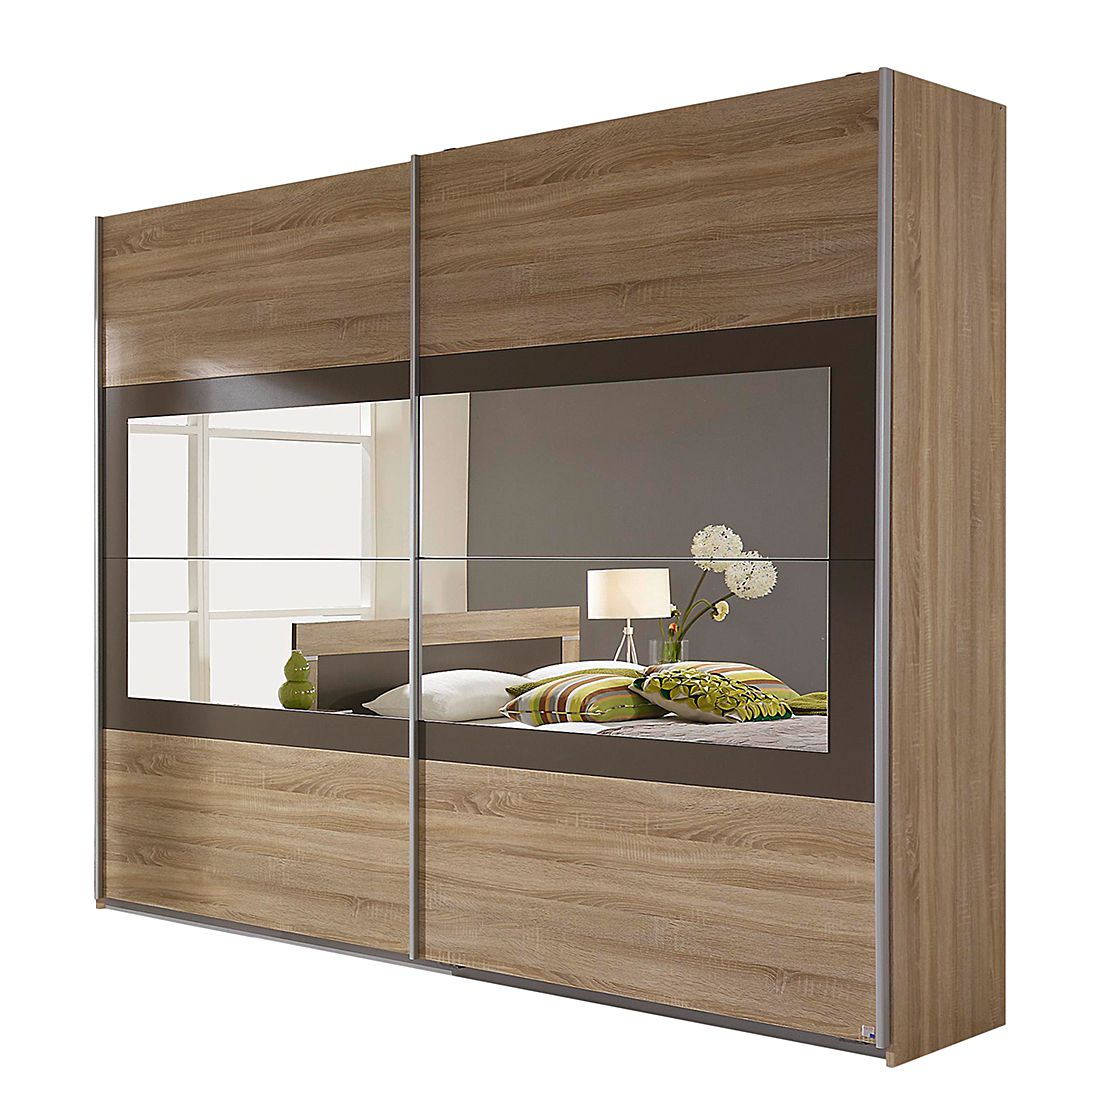 eiche sonoma schrank game schwebetren schrank eiche sonoma wei with eiche sonoma schrank. Black Bedroom Furniture Sets. Home Design Ideas